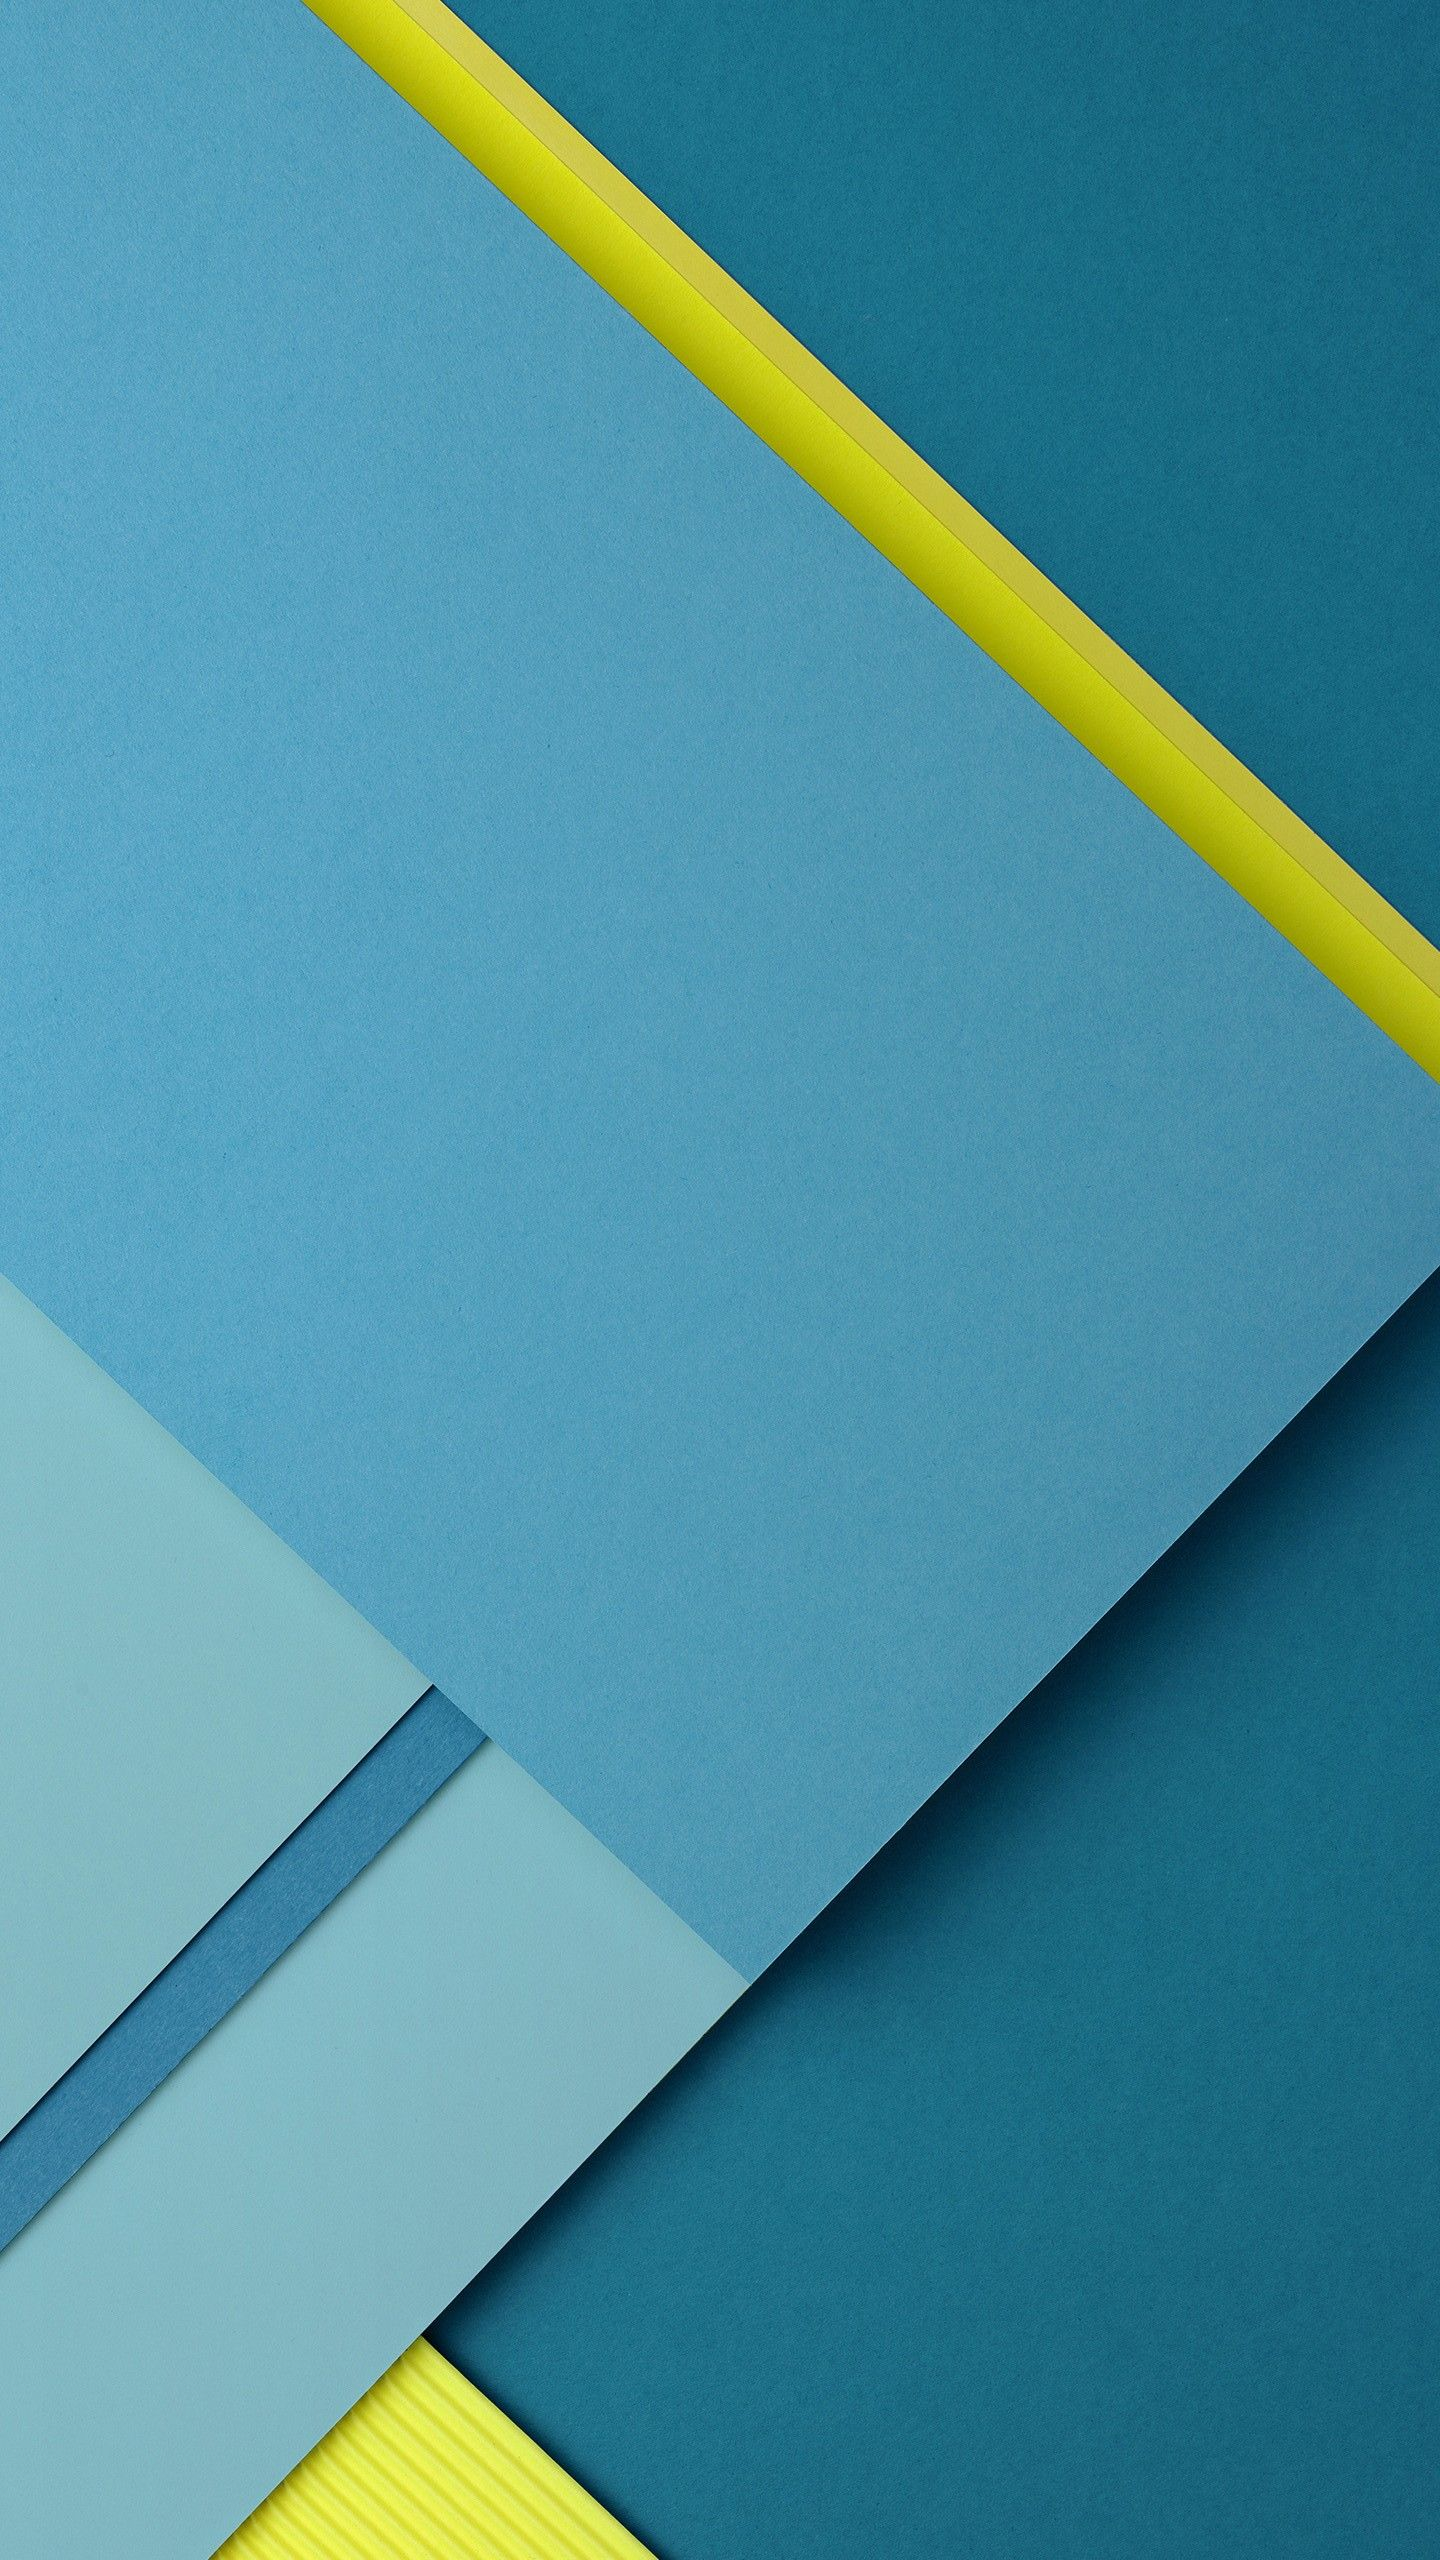 Abstract Chrome OS Material Design Stock wallpapers in